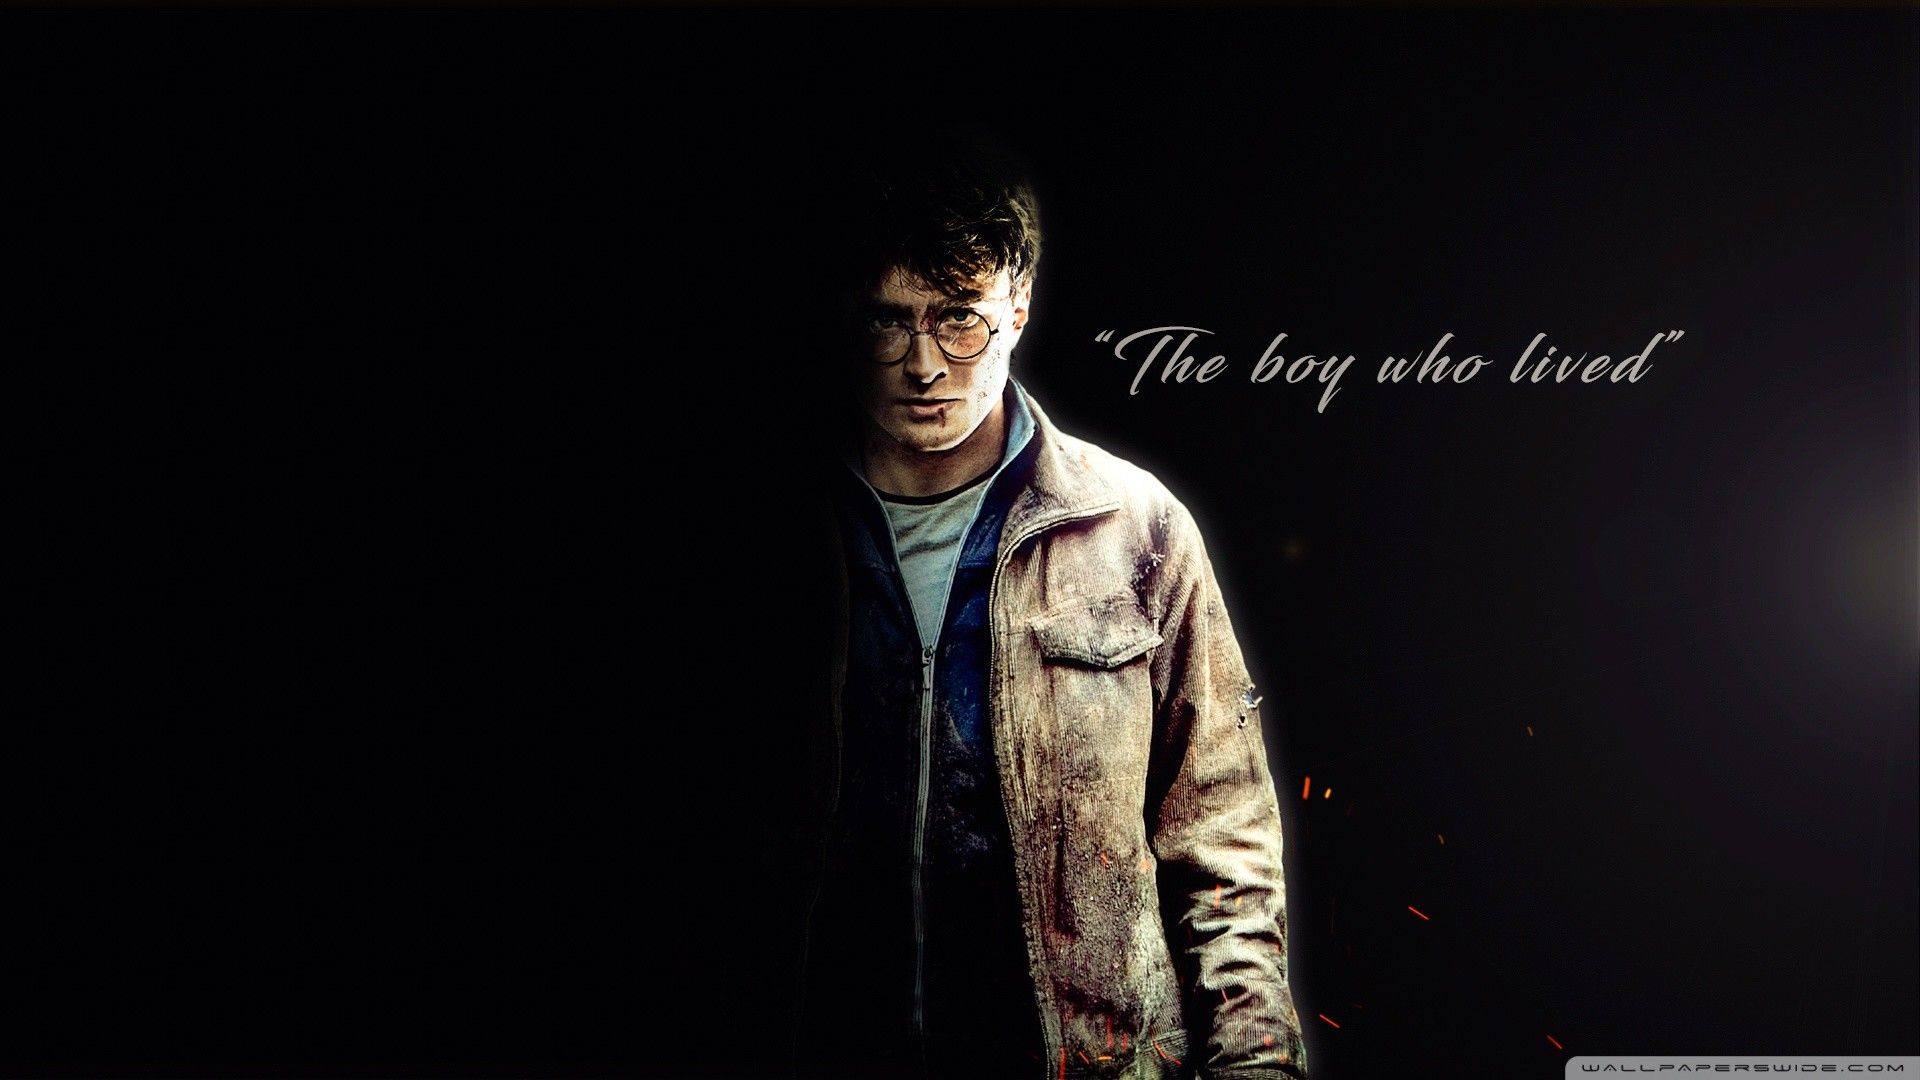 Res 1920x1080 Harry Potter The Boy Who Lived Hd Wide